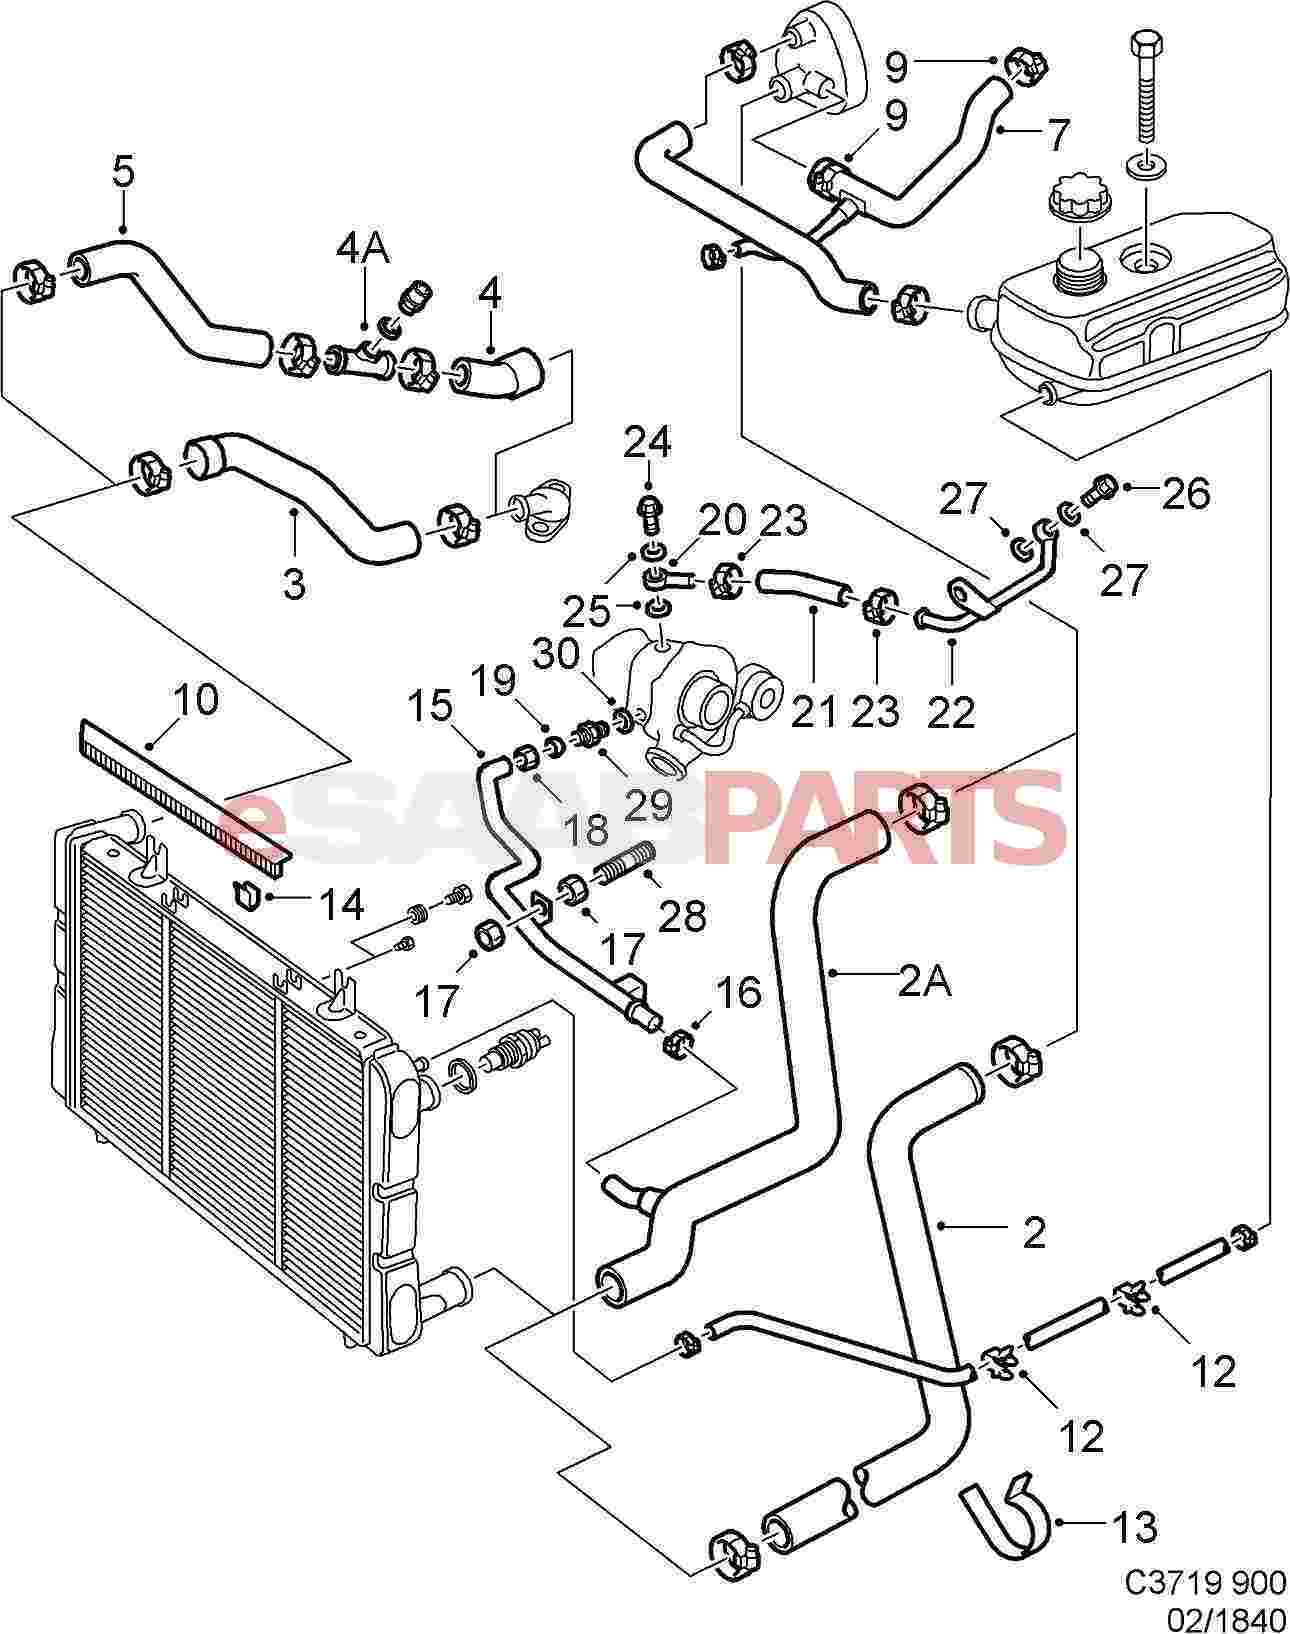 B8 Audi Fuse Box Diagram